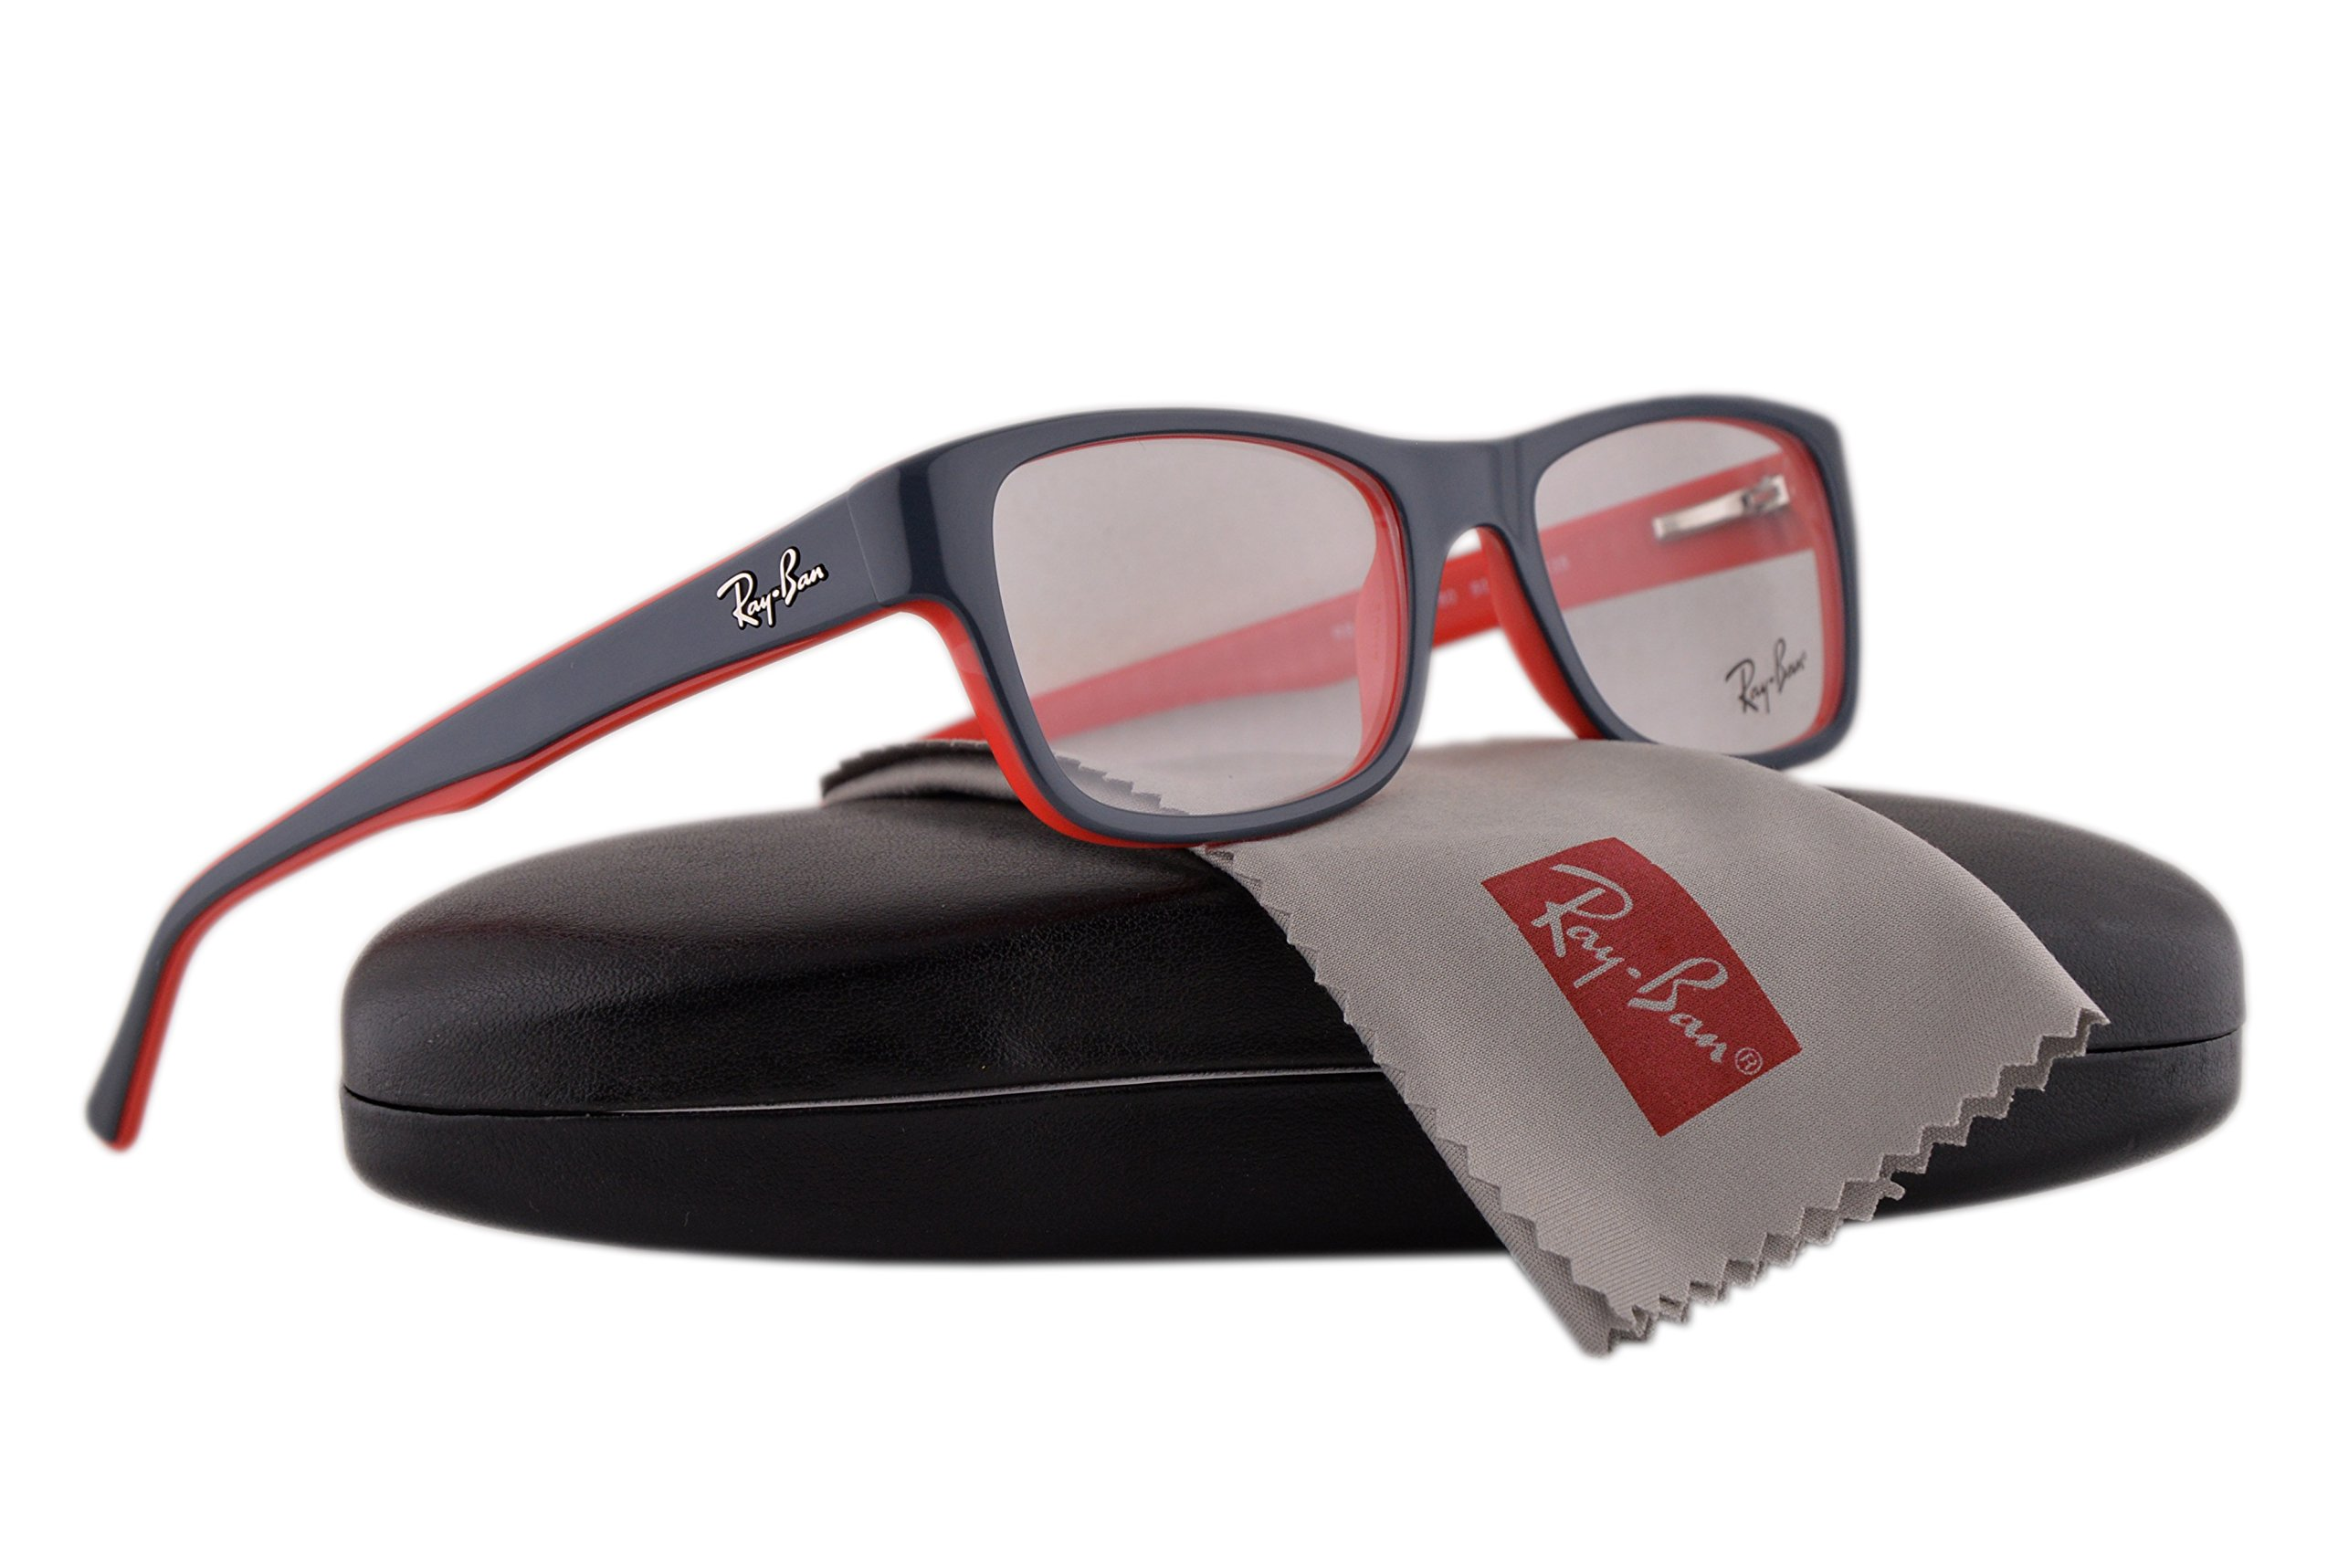 Ray Ban RX5268 Eyeglasses 48-17-135 Top Grey On Red w/Demo Clear Lens 5180 RB5268 RB 5268 RX 5268